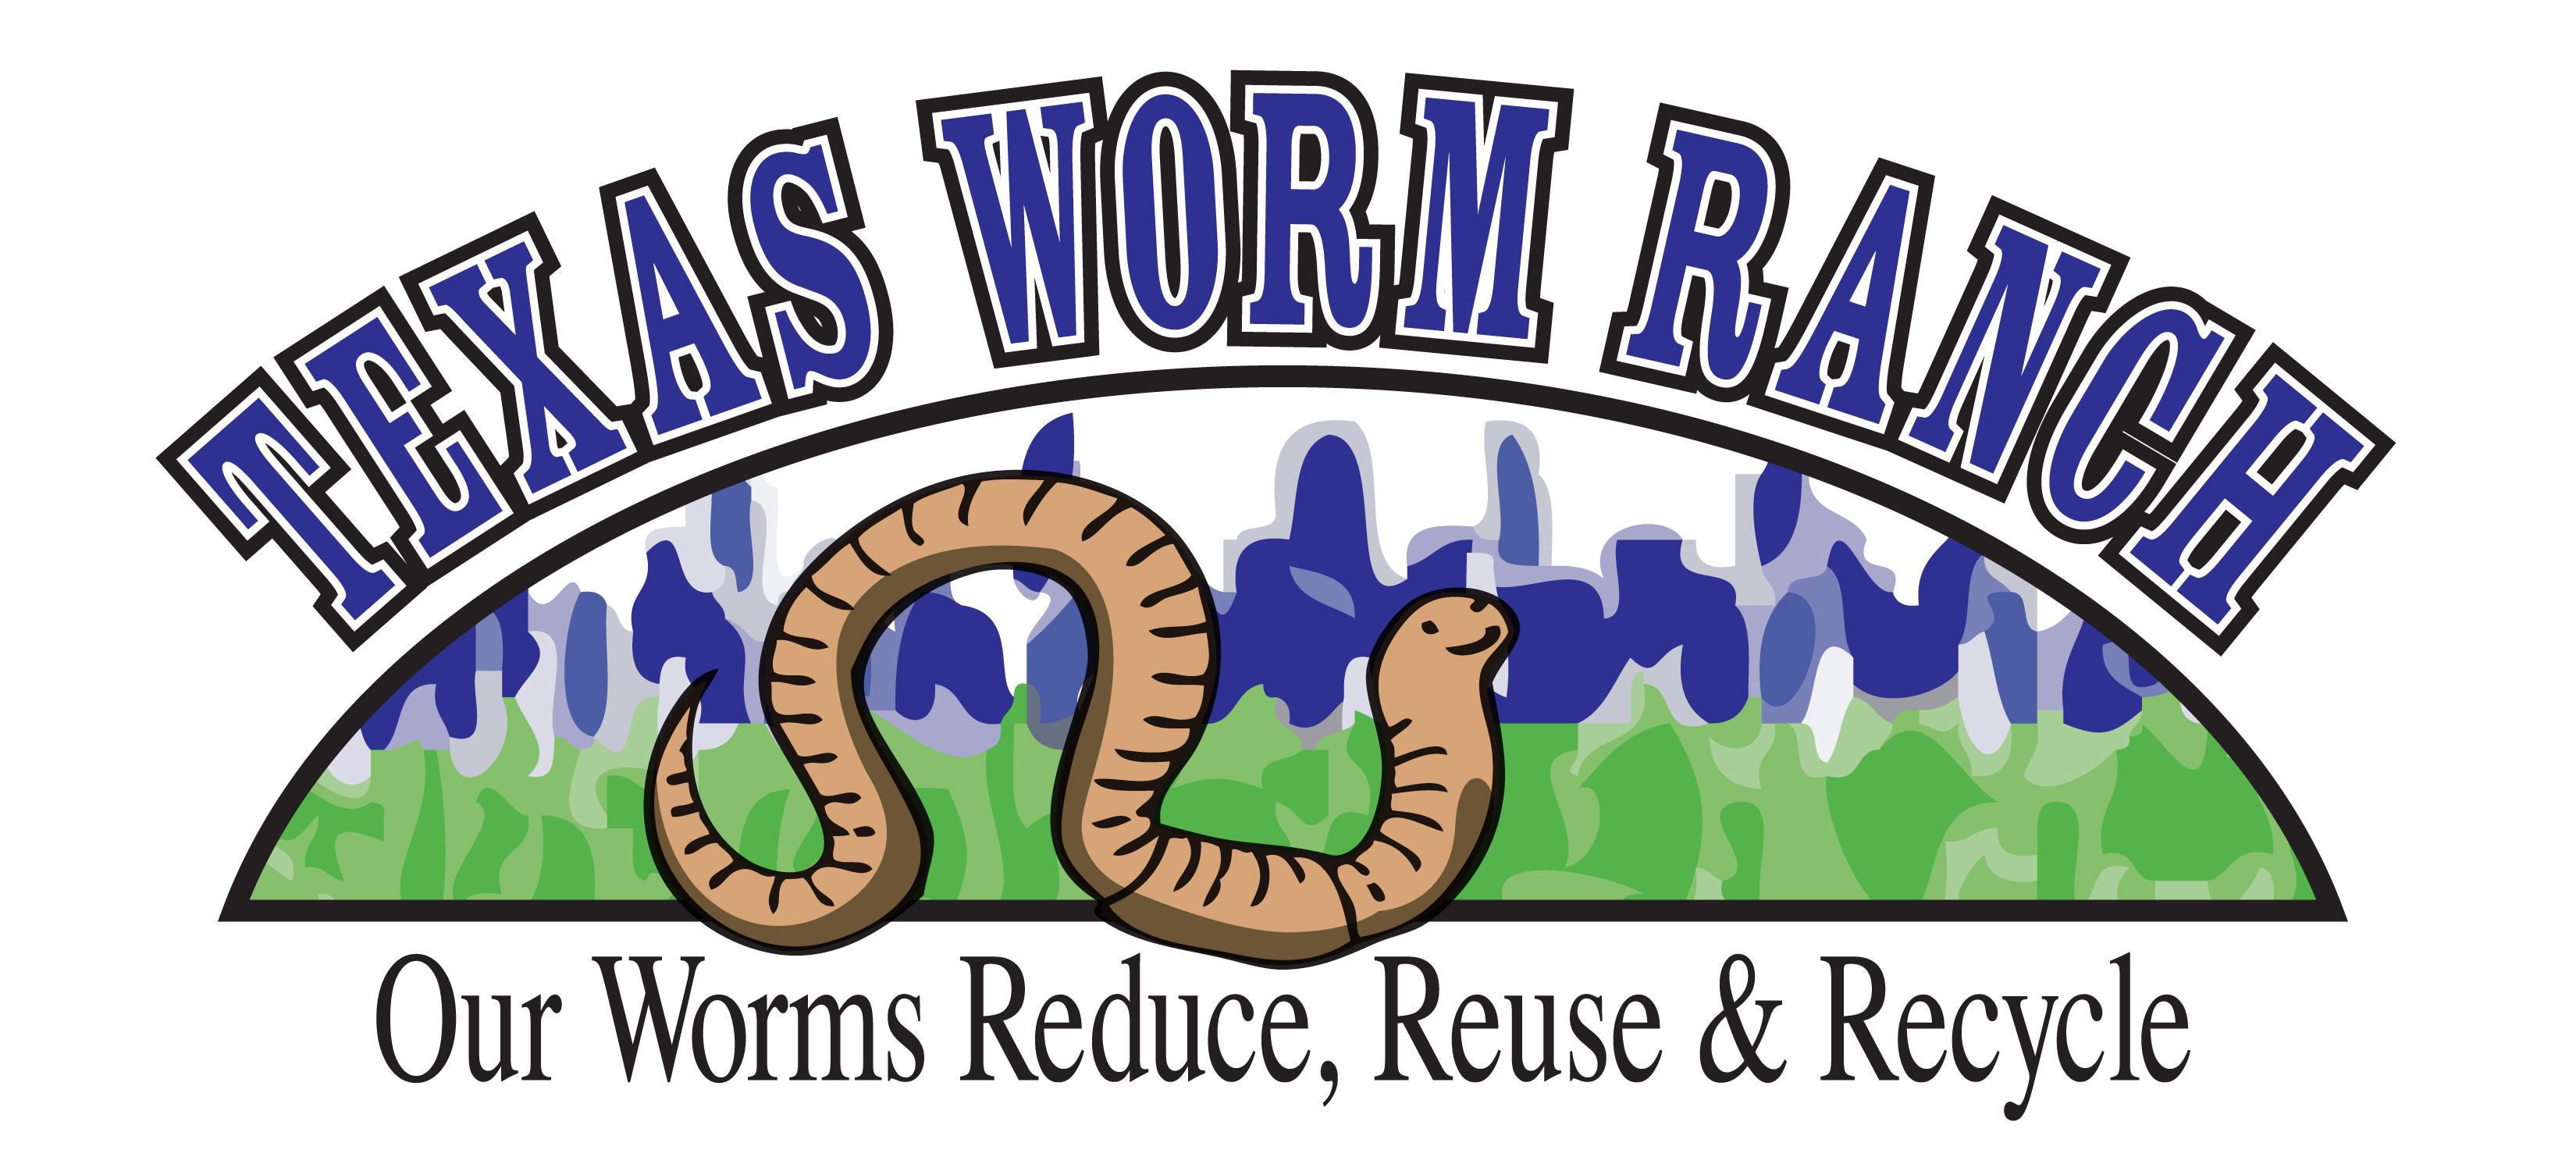 Texas Worm Ranch